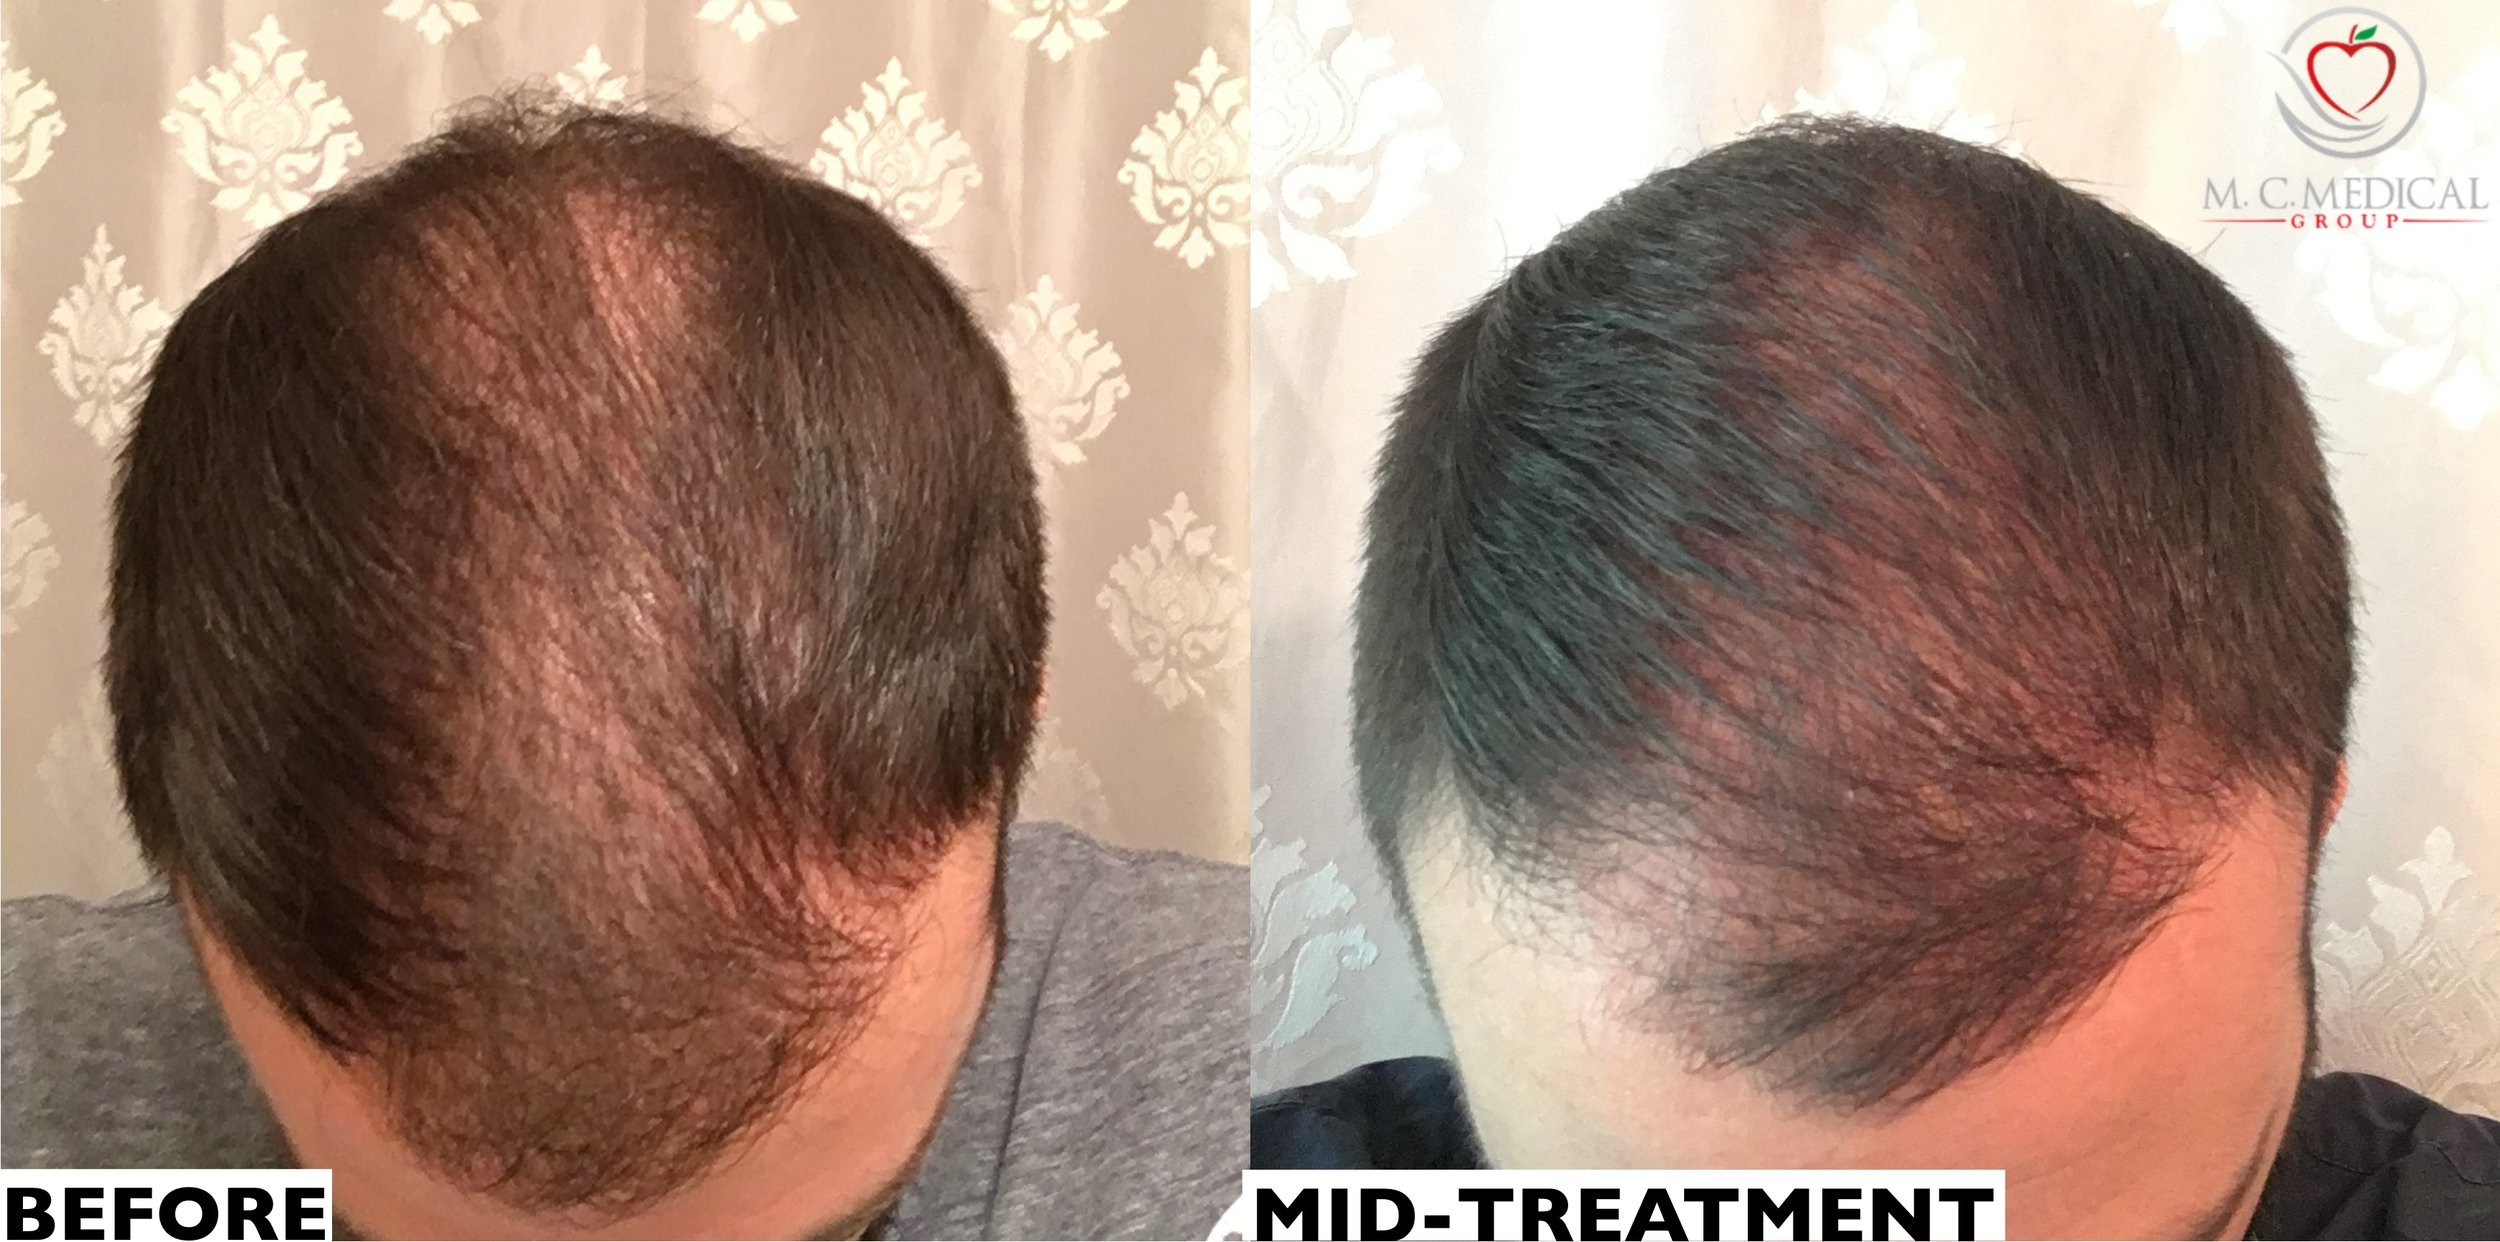 Patient displayed is currently mid-treatment with 4 treatments in 4 months -